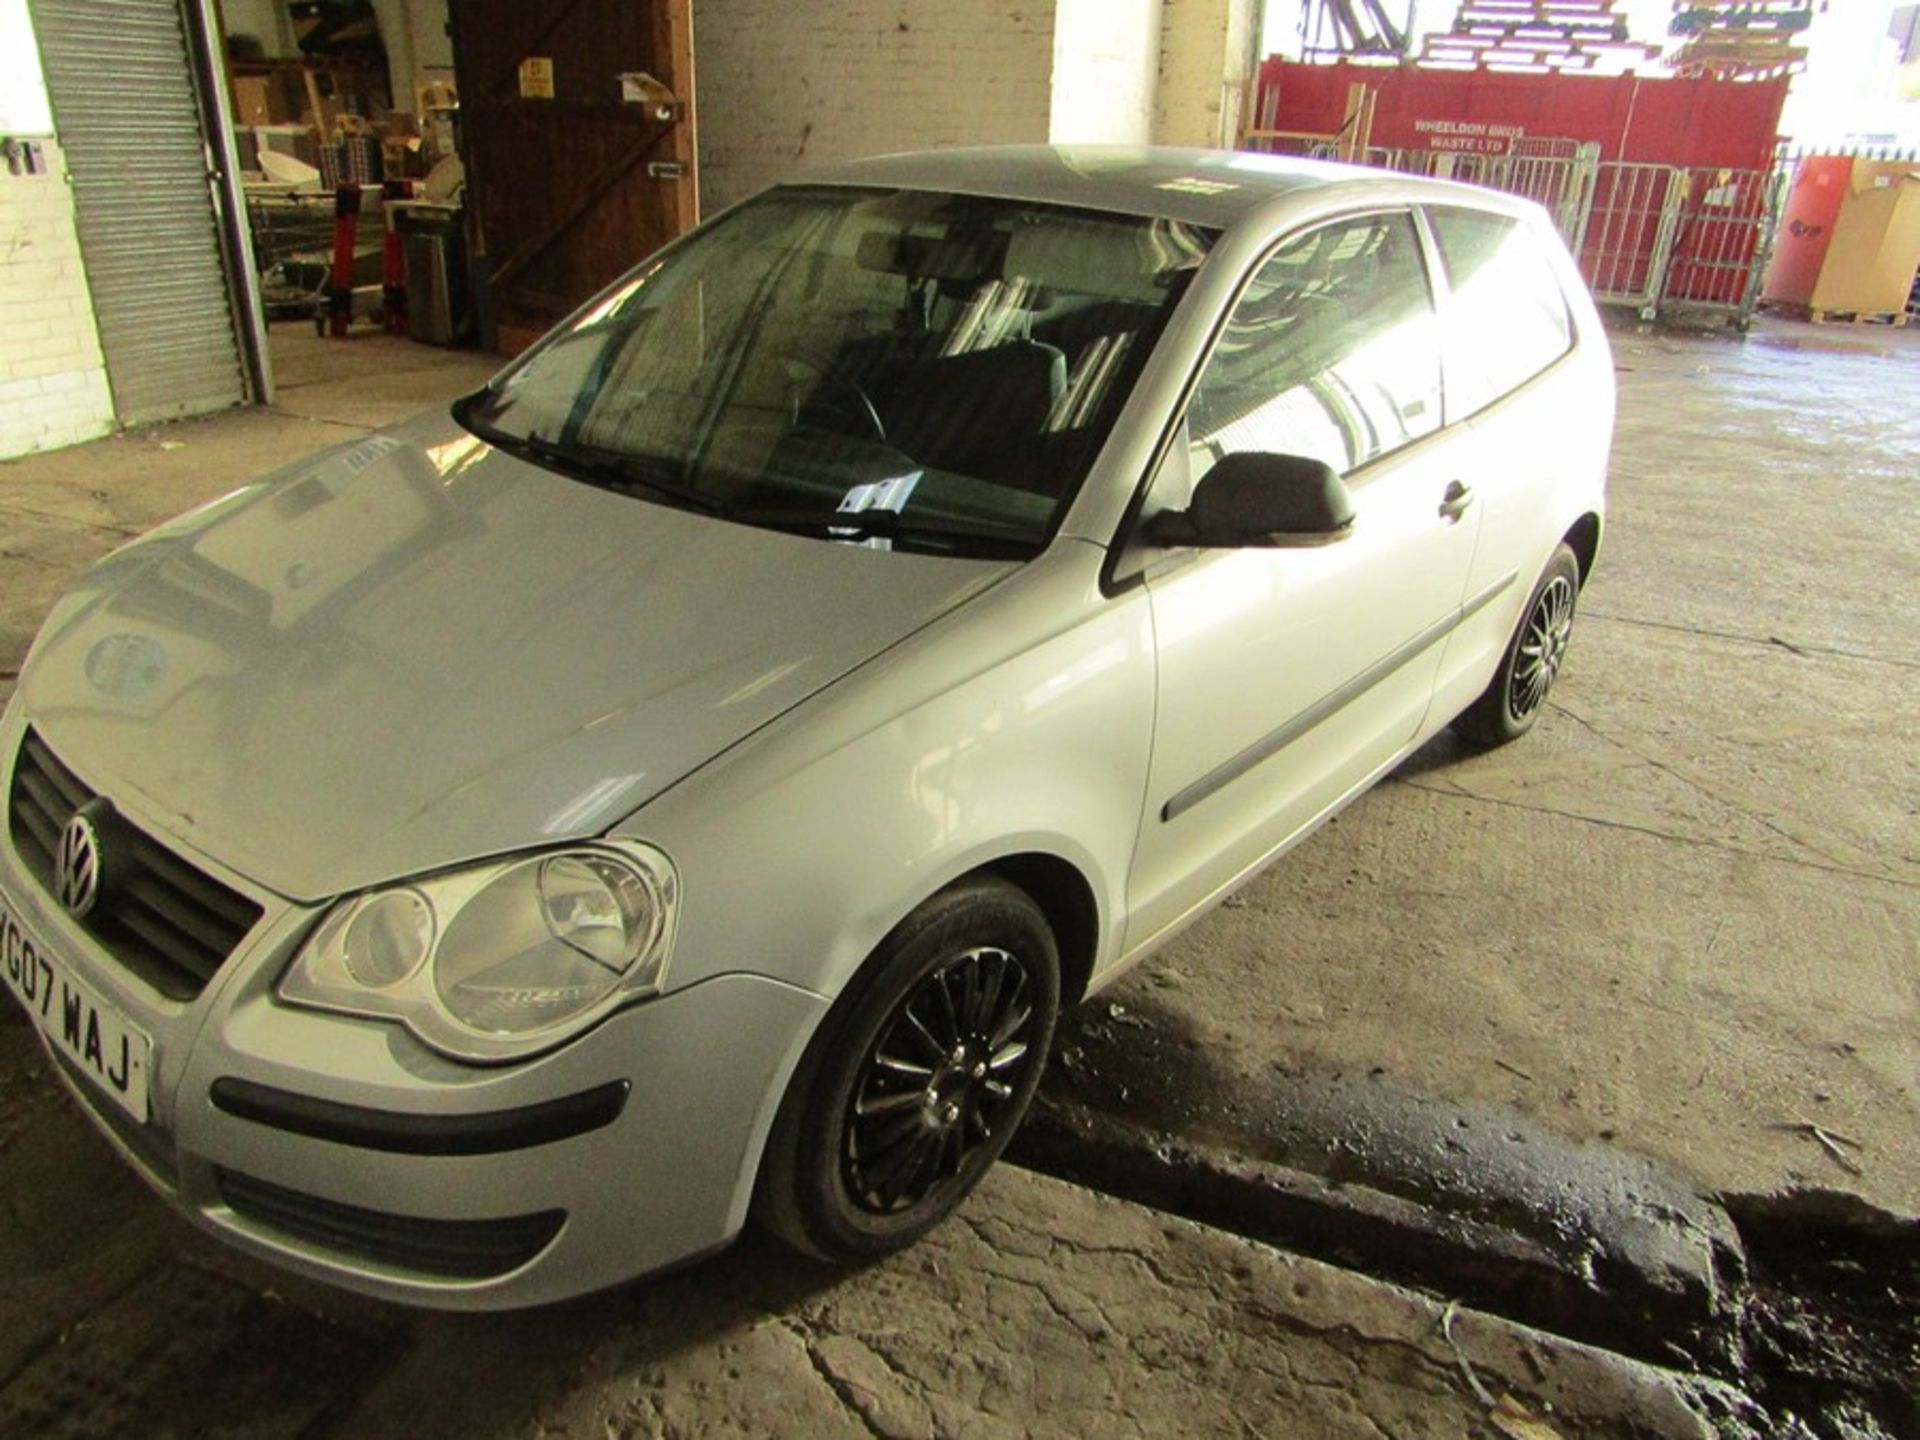 2007 Volkswagen Polo 1.2L hatchback, starts and drives 70,294 Miles Failed MOT 12/09/2020 due to; - Image 5 of 9